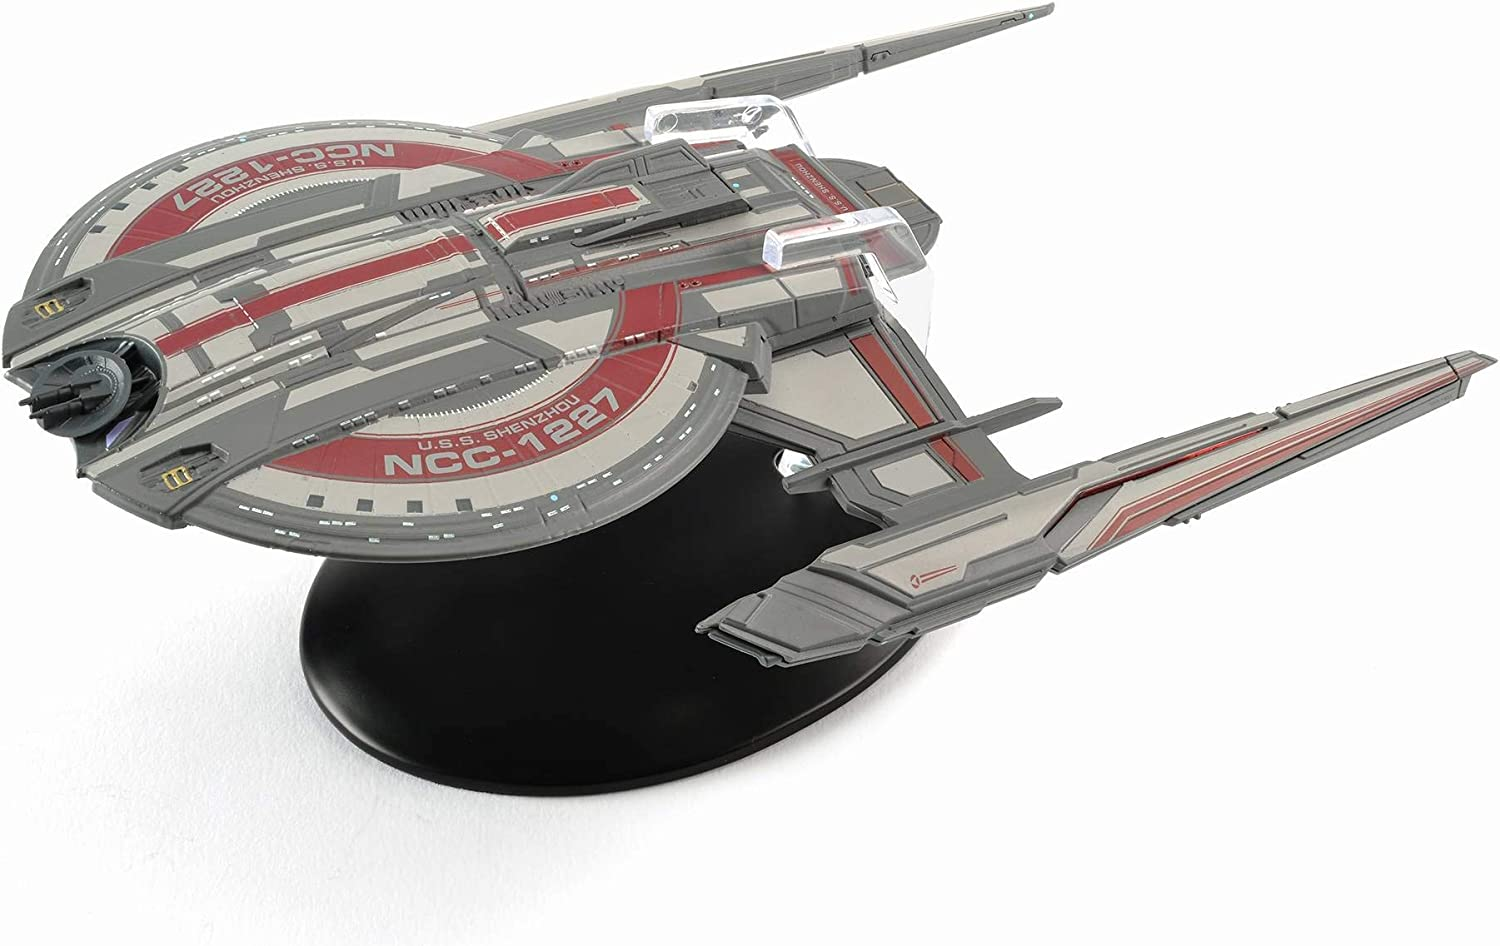 Star Trek: Discovery - USS Shenzhou, NCC-1227 model with magazine